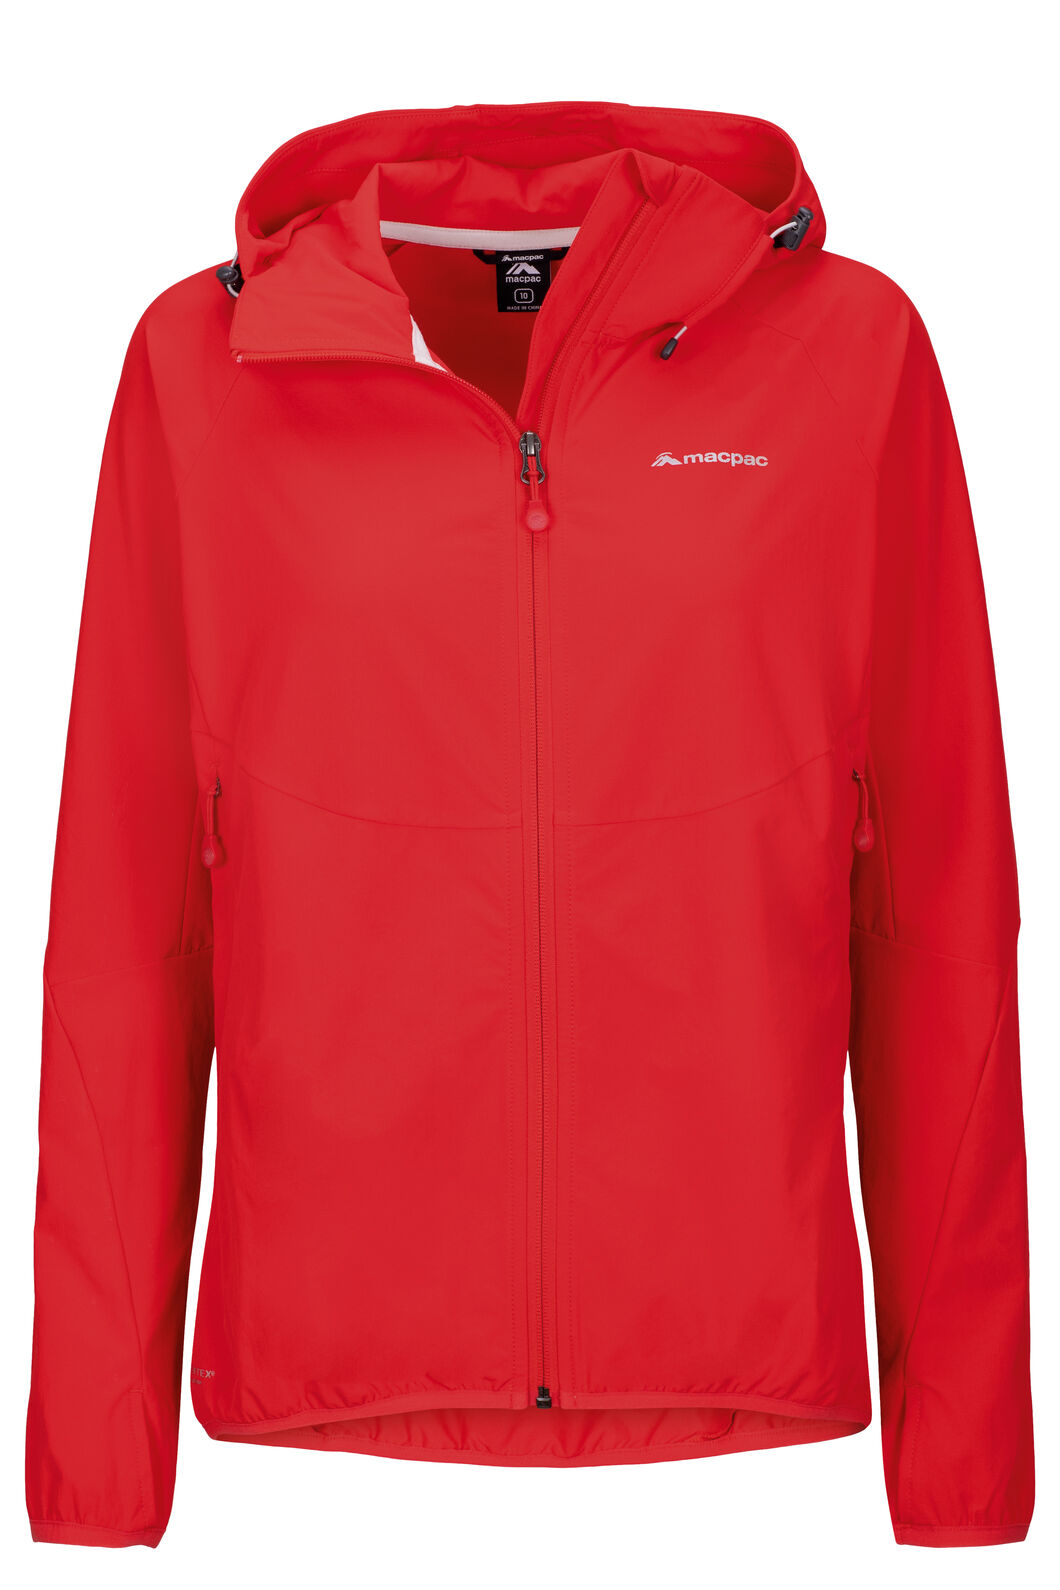 Macpac Mannering Pertex® Hooded Jacket — Women's, Flame Scarlet, hi-res